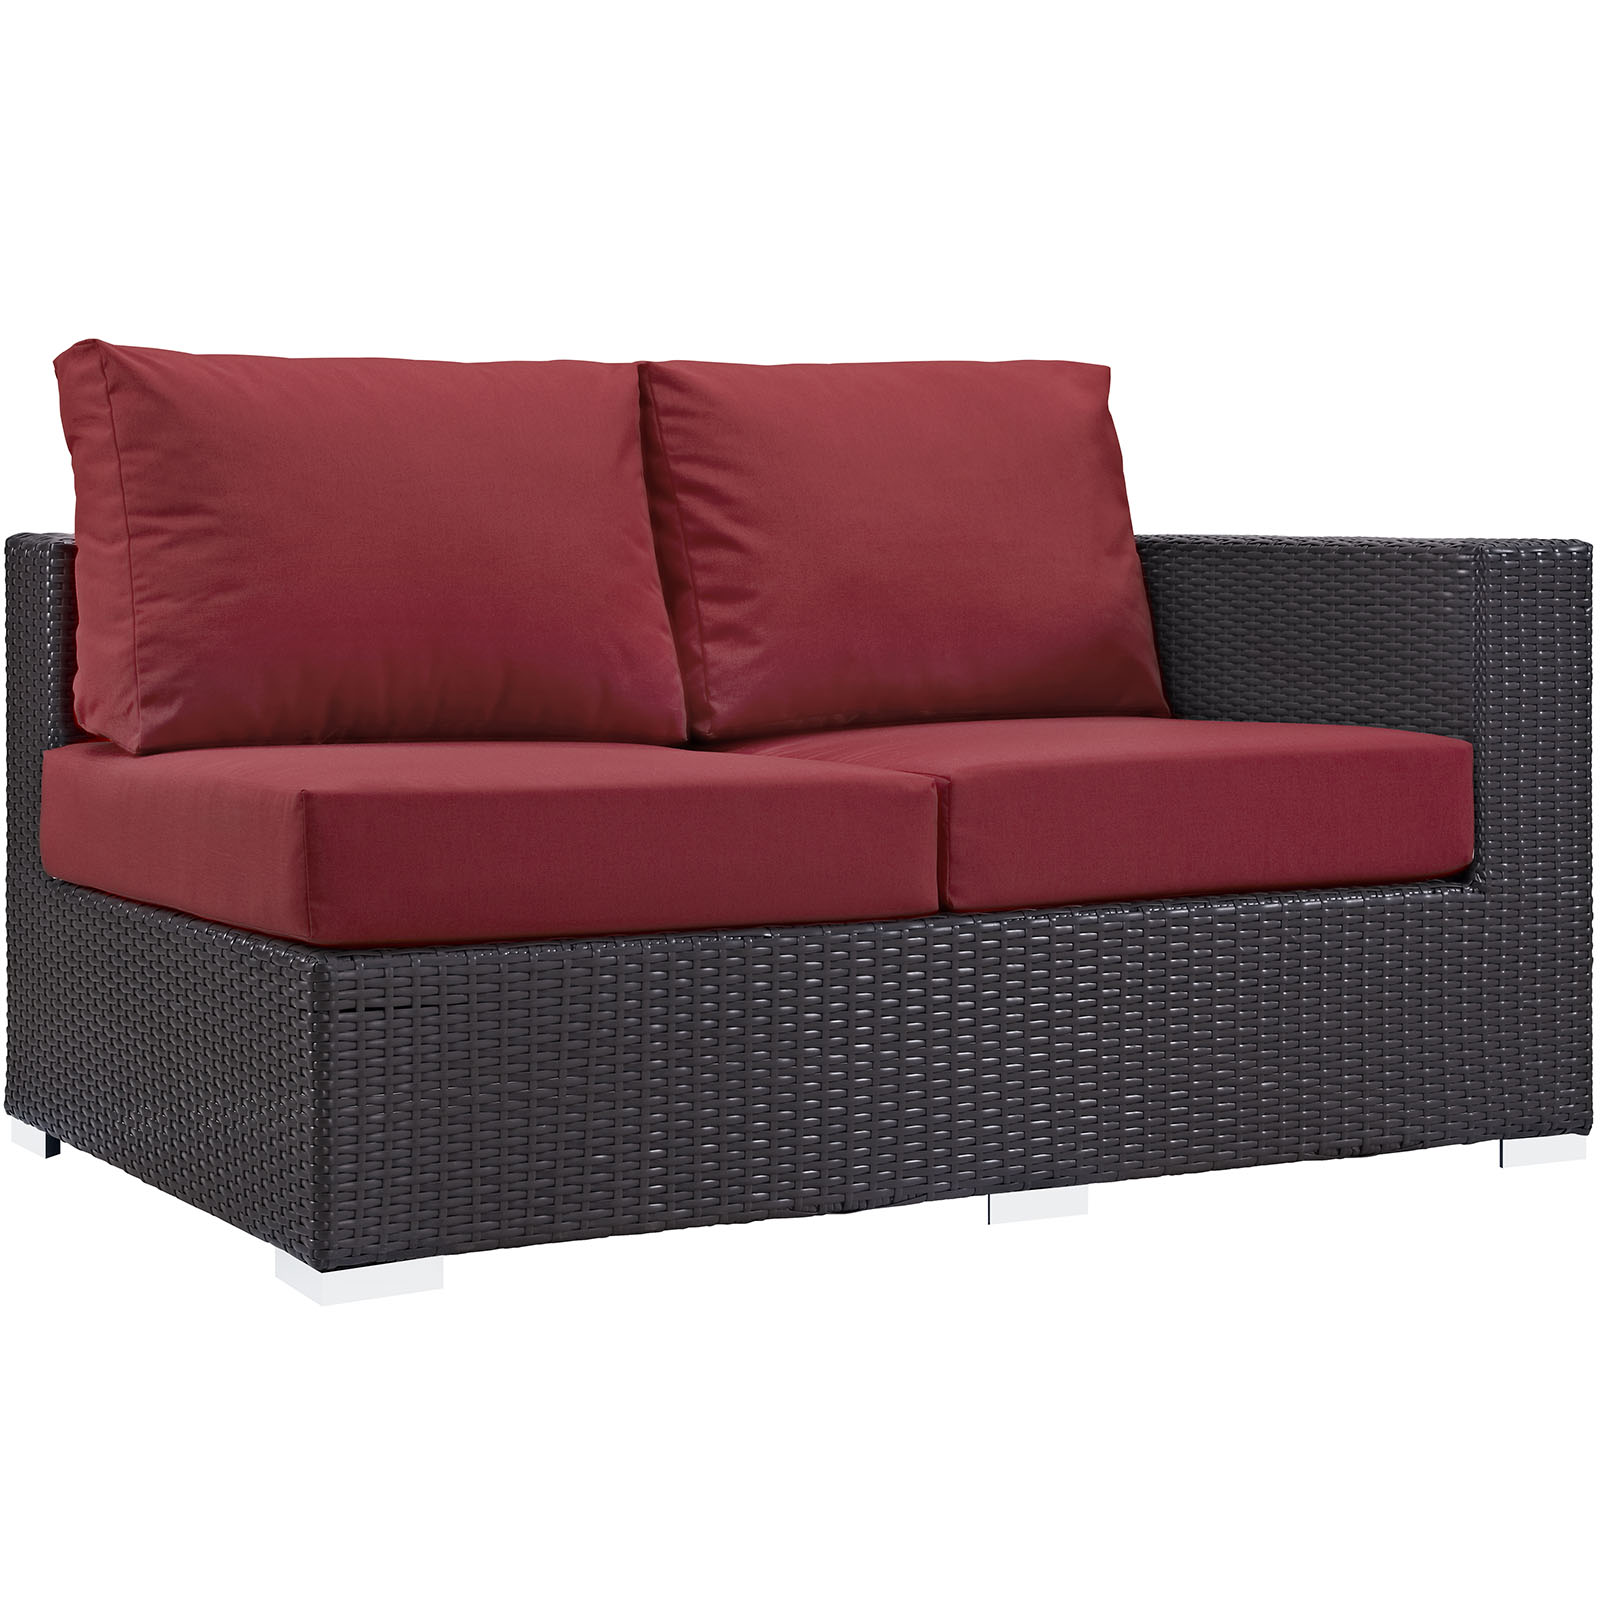 Modern Contemporary Urban Design Outdoor Patio Balcony Right Arm Loveseat Sofa, Red, Rattan